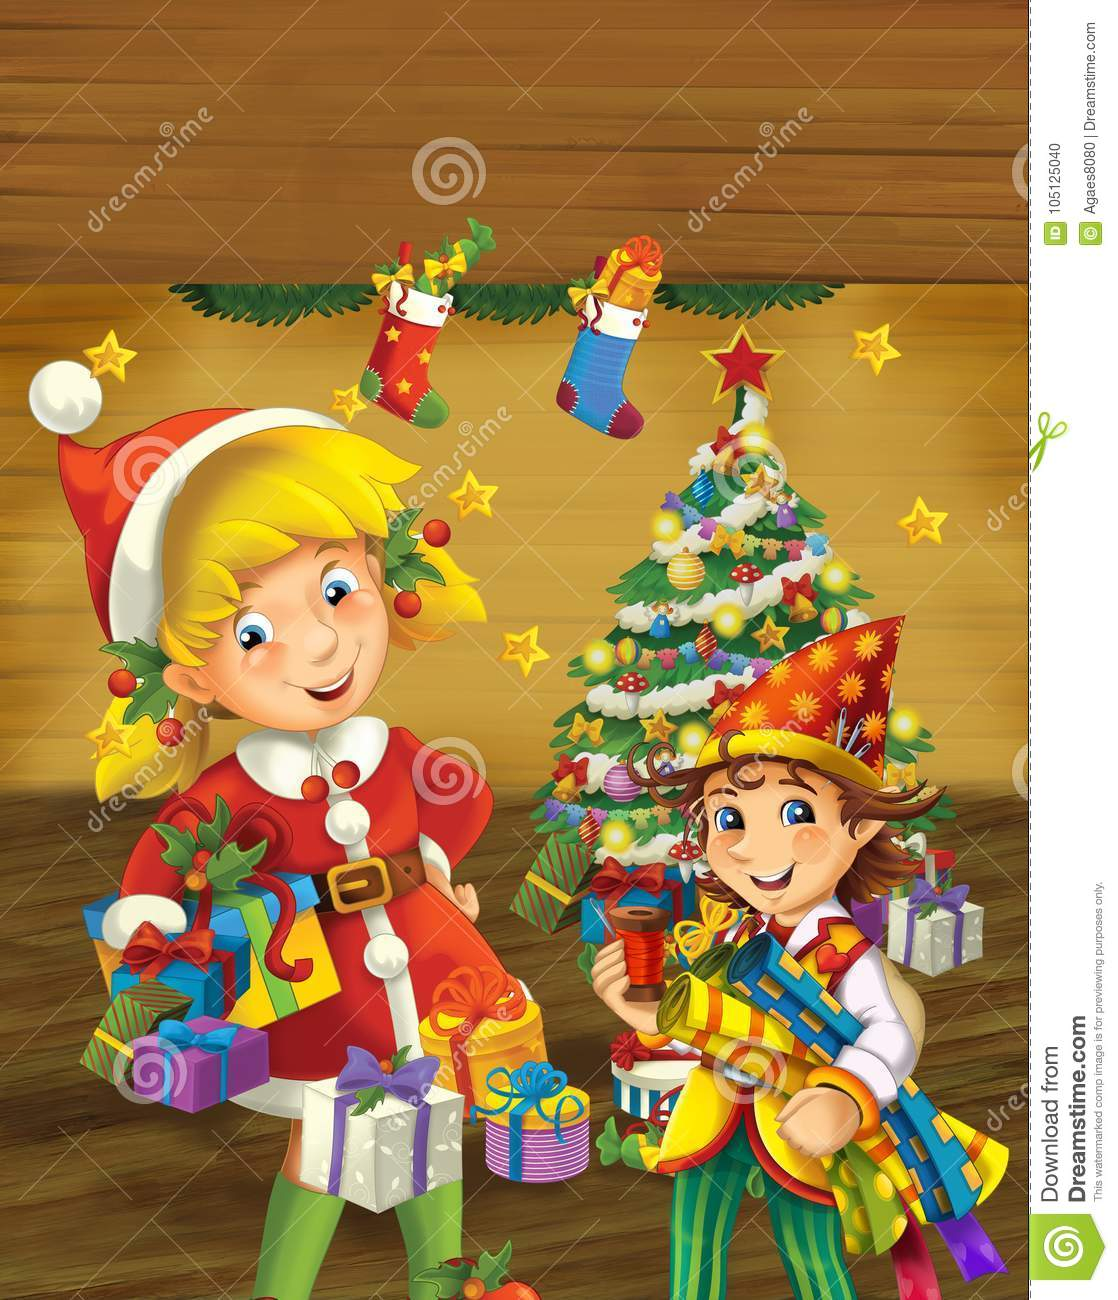 Cartoon scene with christmas elf standing near christmas tree